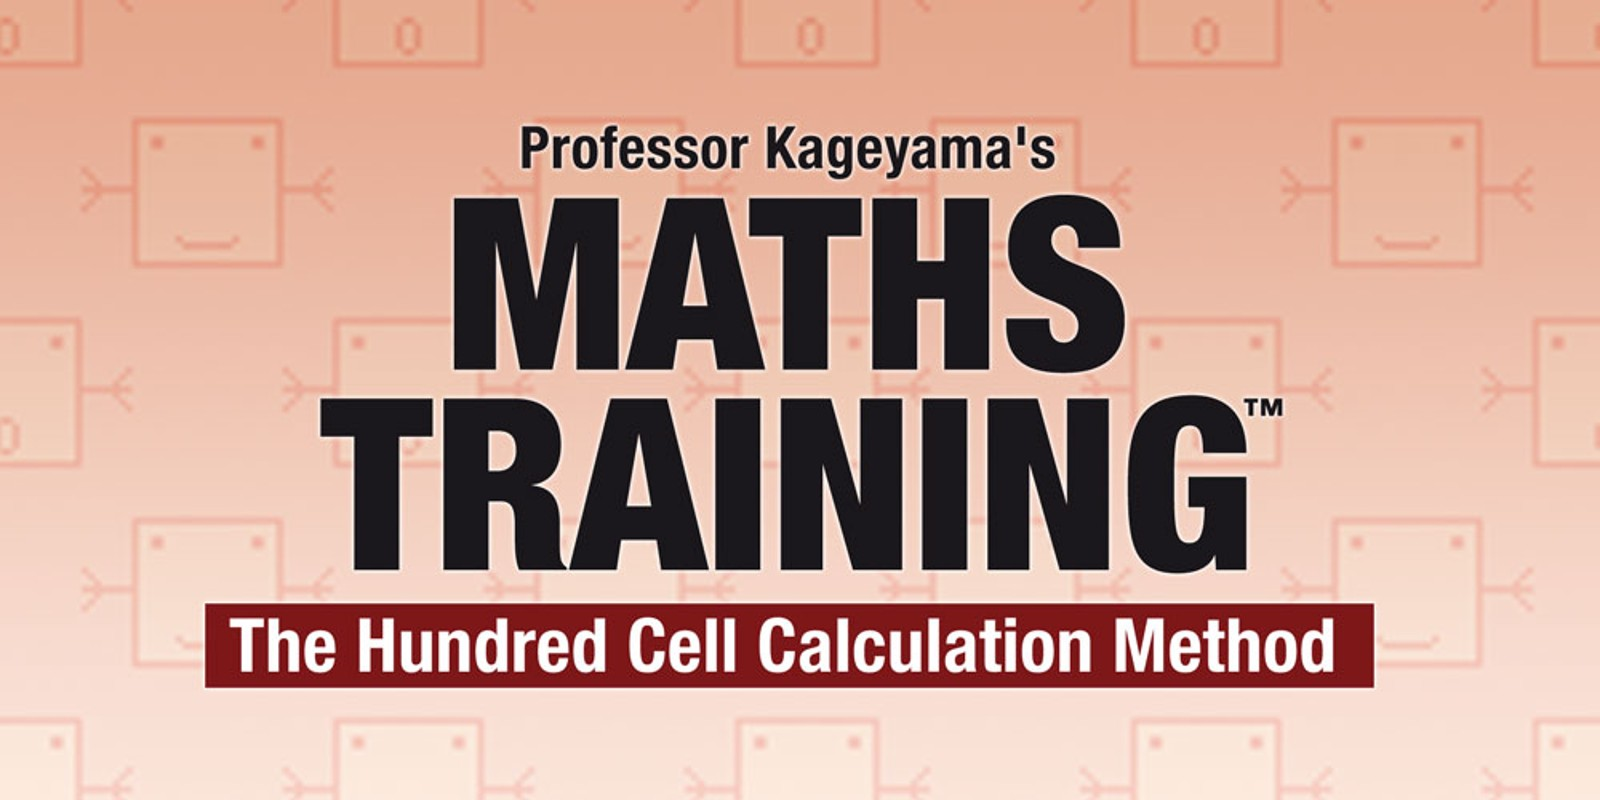 Professor Kageyama's Maths Training